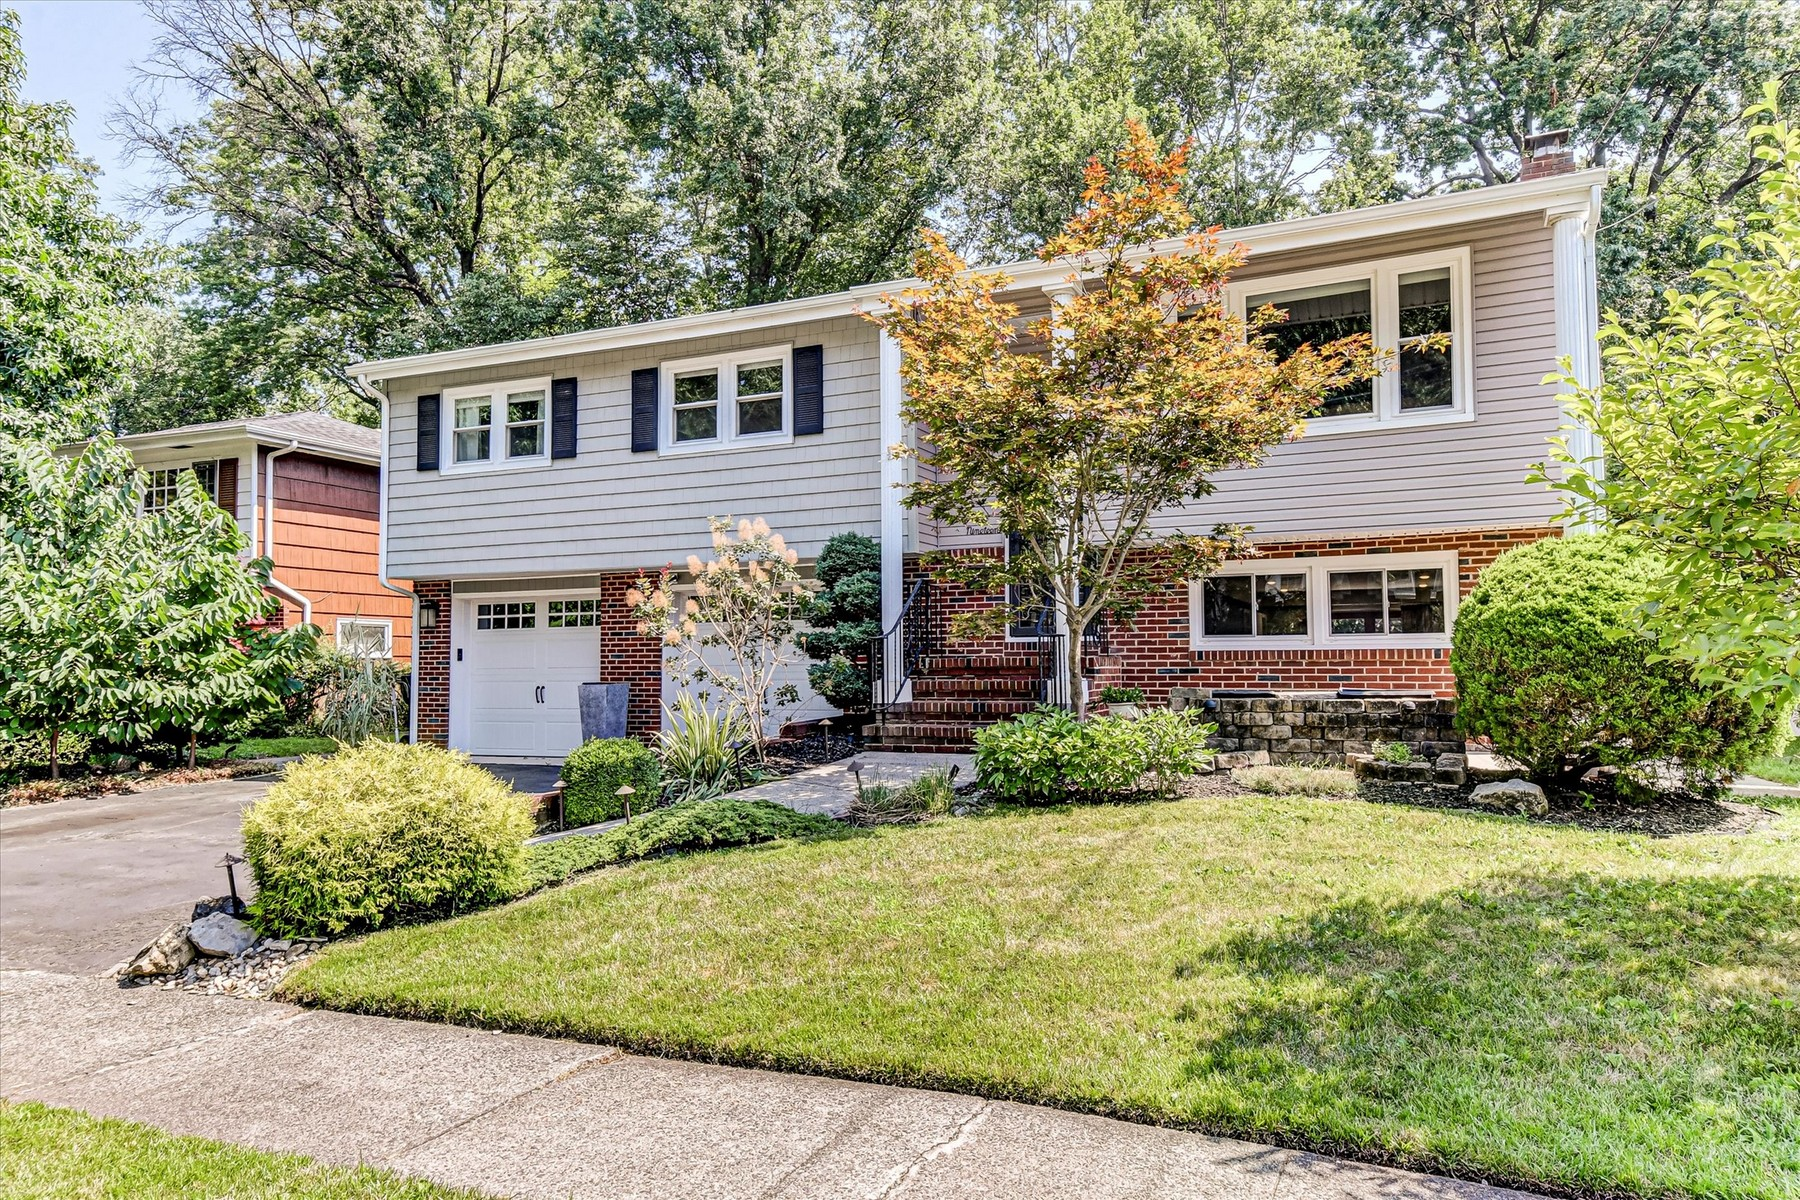 Single Family Homes for Sale at 19 Clayton Ct, Woodbridge 19 Clayton Ct. Woodbridge, New Jersey 07095 United States